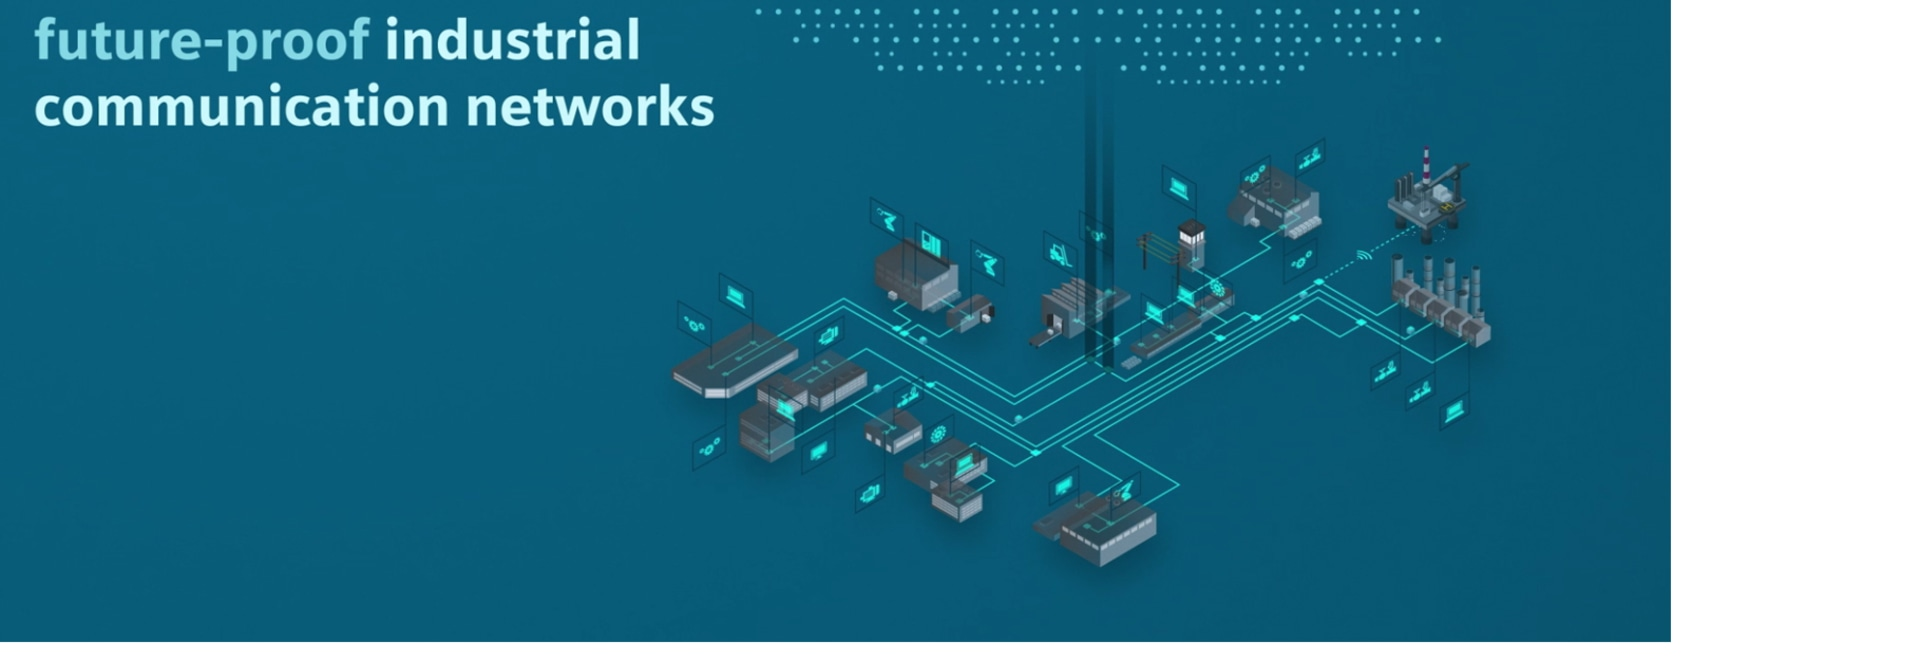 Industrial Communication Networks - The basis for digitalization